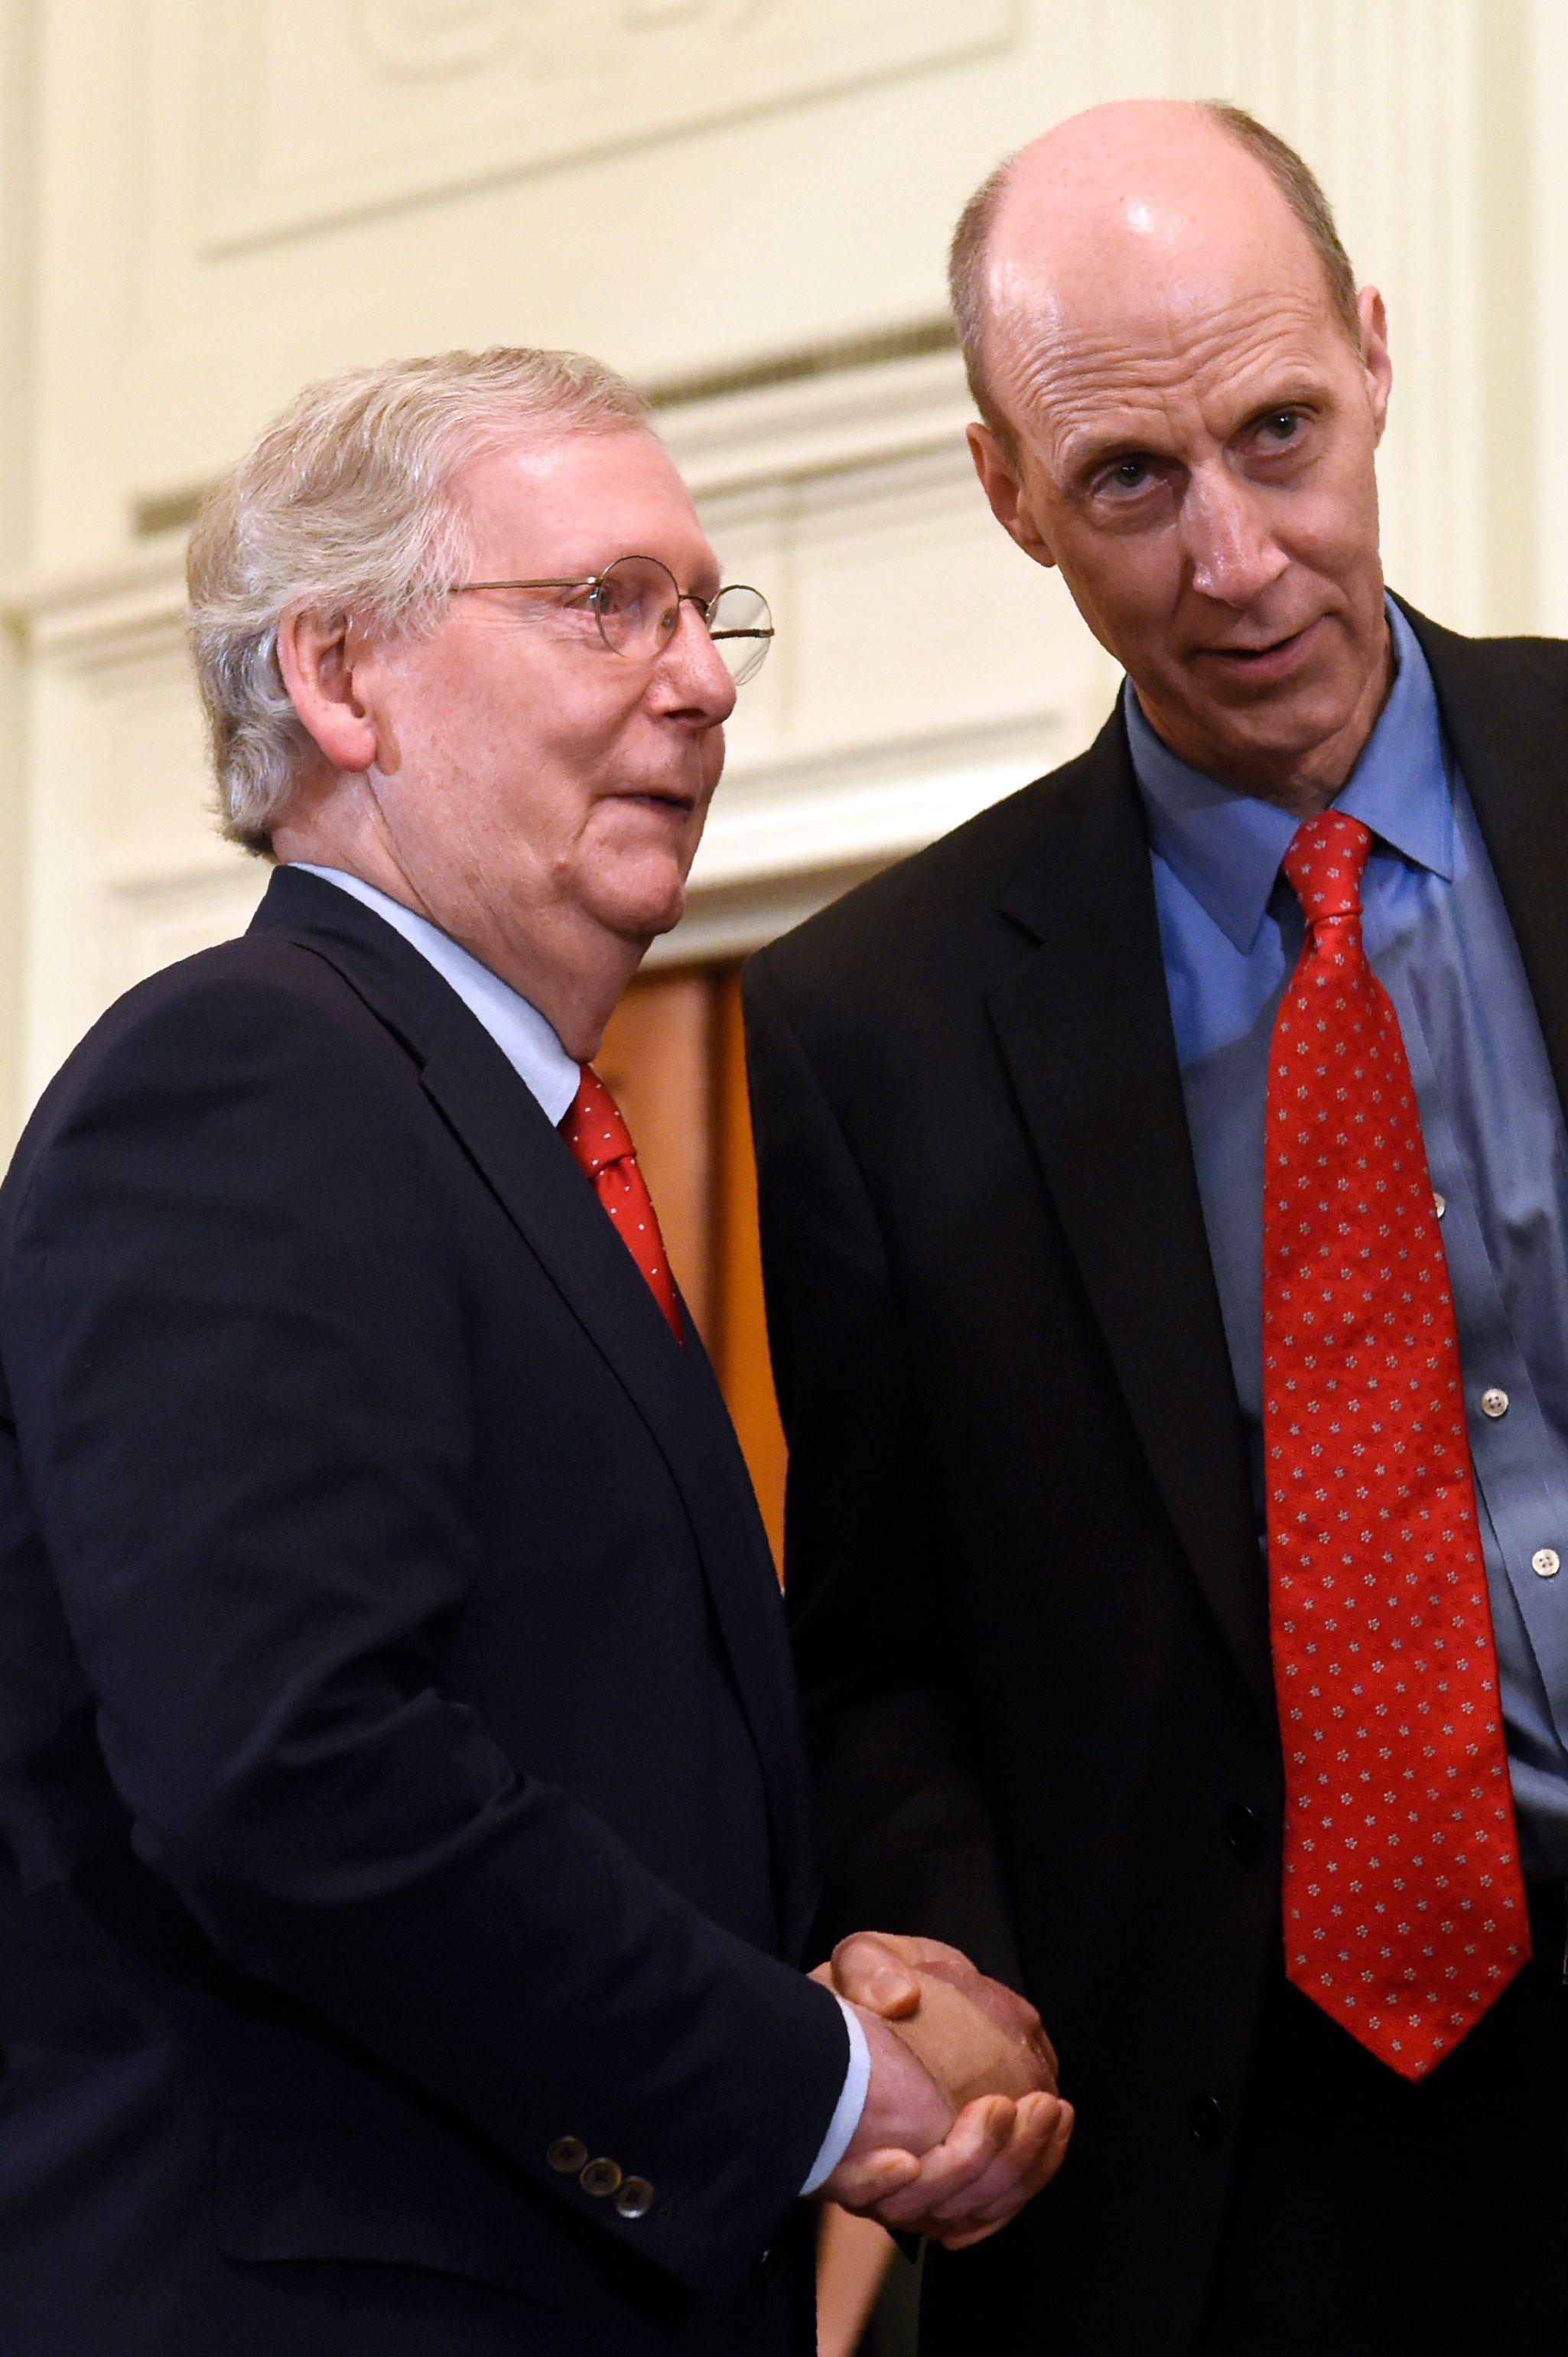 Mitch McConnell talks with Ed Whelan at the White House.